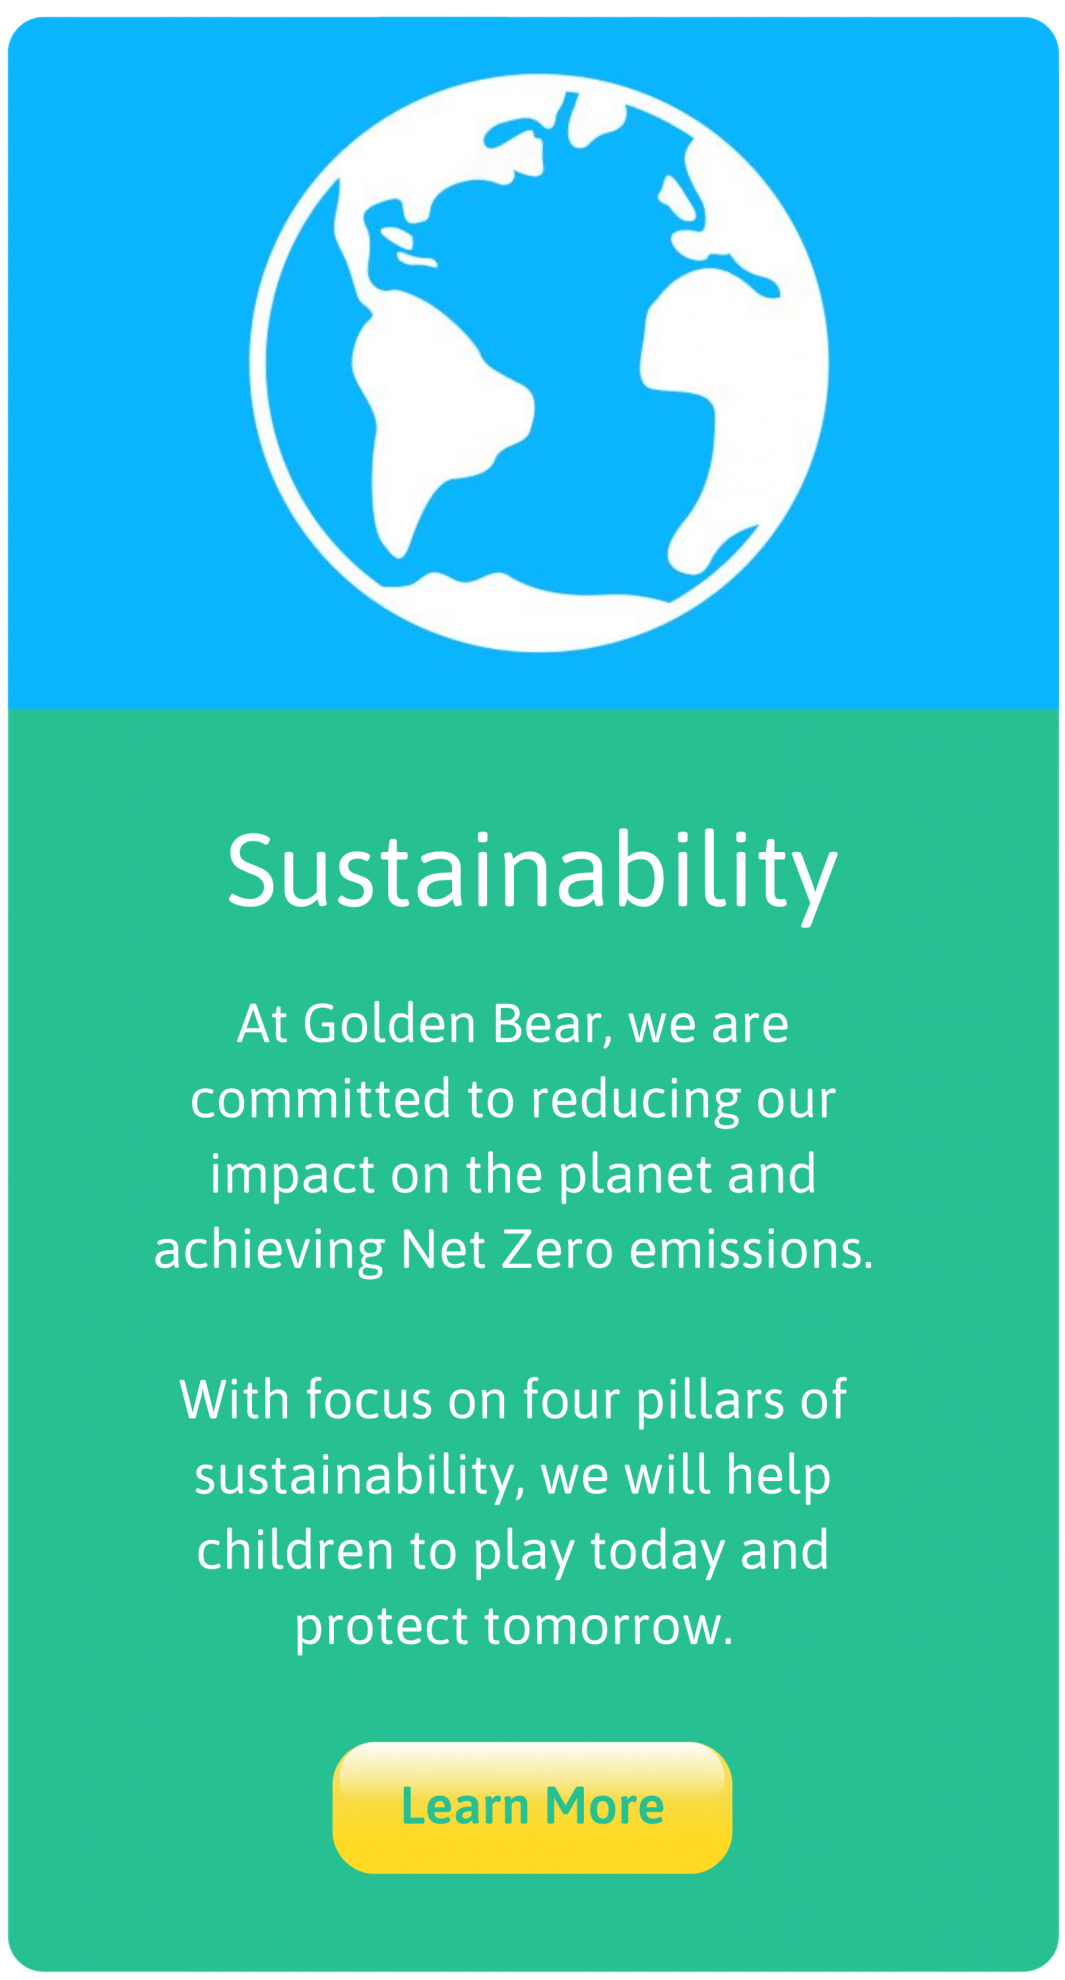 Golden Bear Toys are committed to becoming sustainable and achieving net zero emissions and protecting the planet